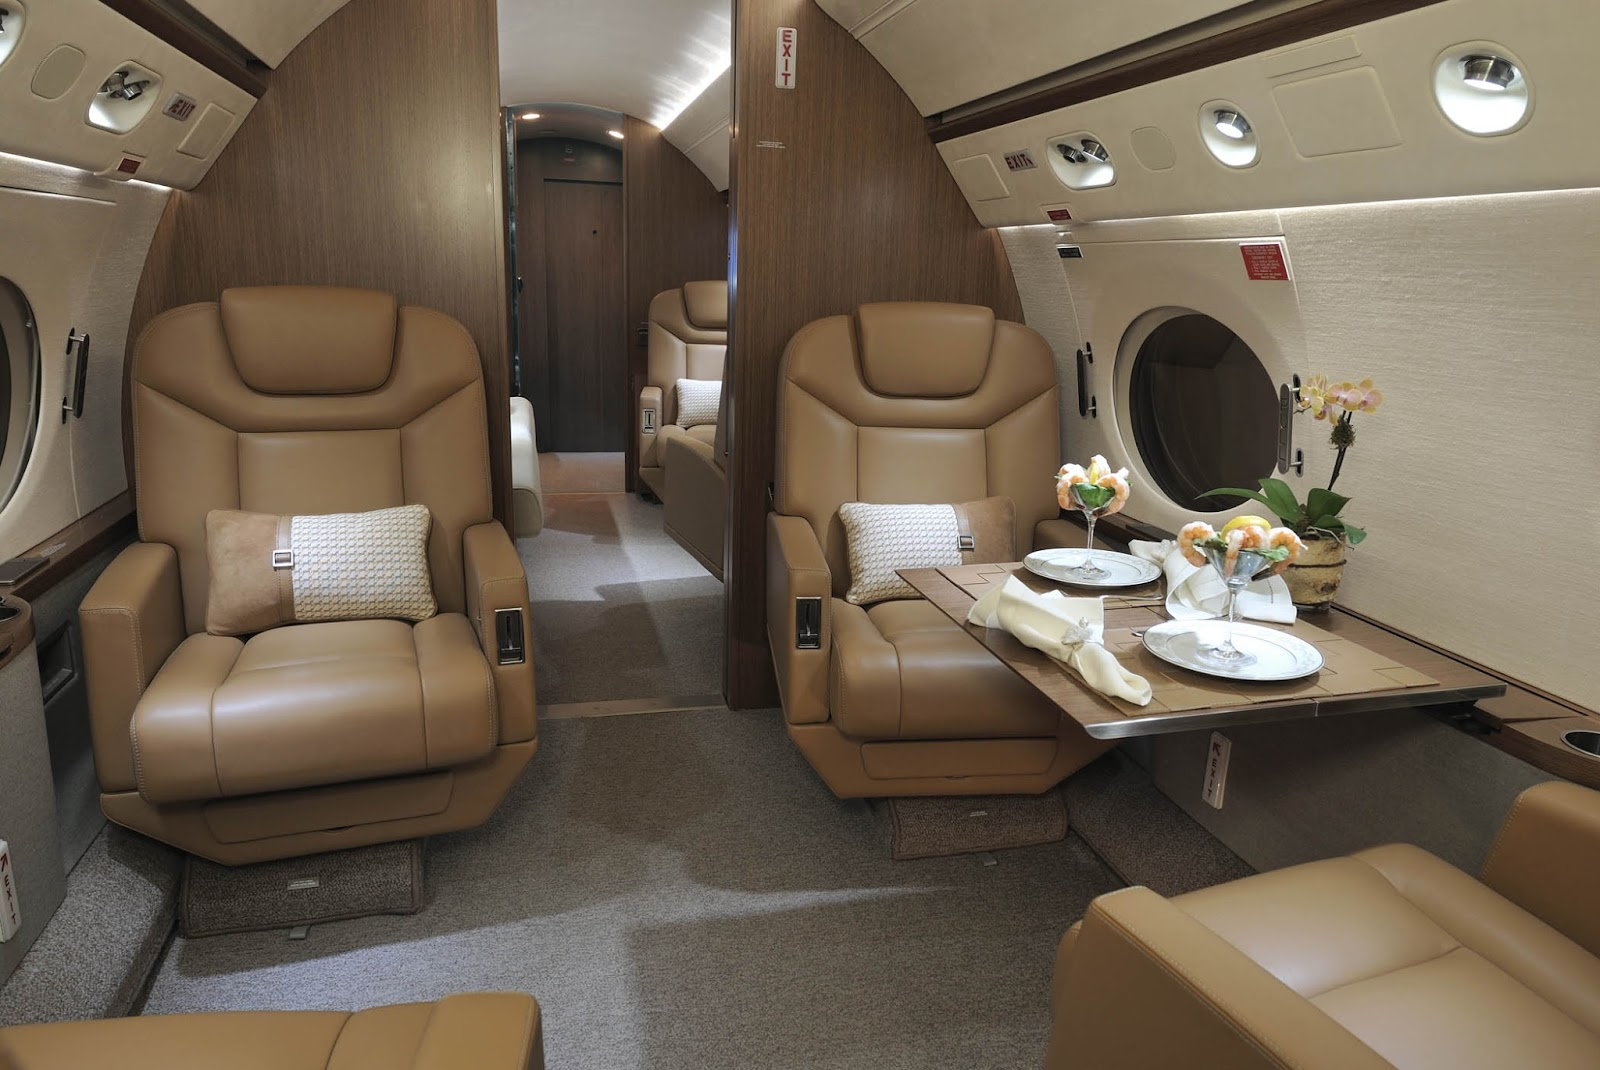 Handcrafted By The Team At IJI, This Luxury Private Jet Includes Throw  Pillows Designed And Fabricated At IJI Using Exquisite Hermes Fabric, ...